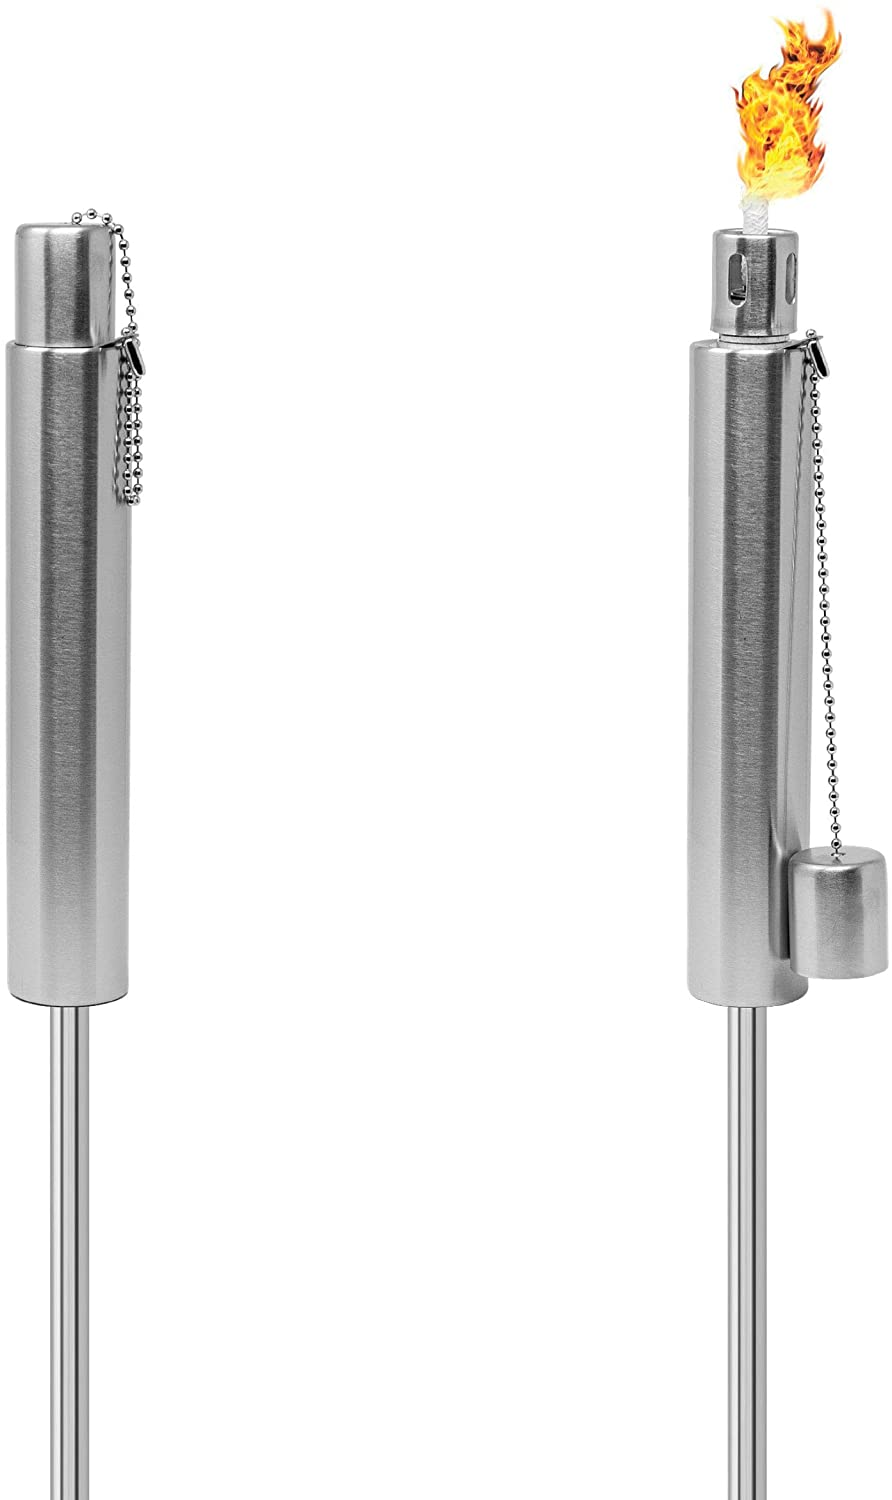 Matney Stainless Steel Torches – 5 ft Outdoor Oil Torch Lamp for Citronella - Garden, Lawn, Backyard Parties – Includes Fiberglass Wick and Snuffer Cap - Set of 2 (Silver Torch Set – Cylinder)